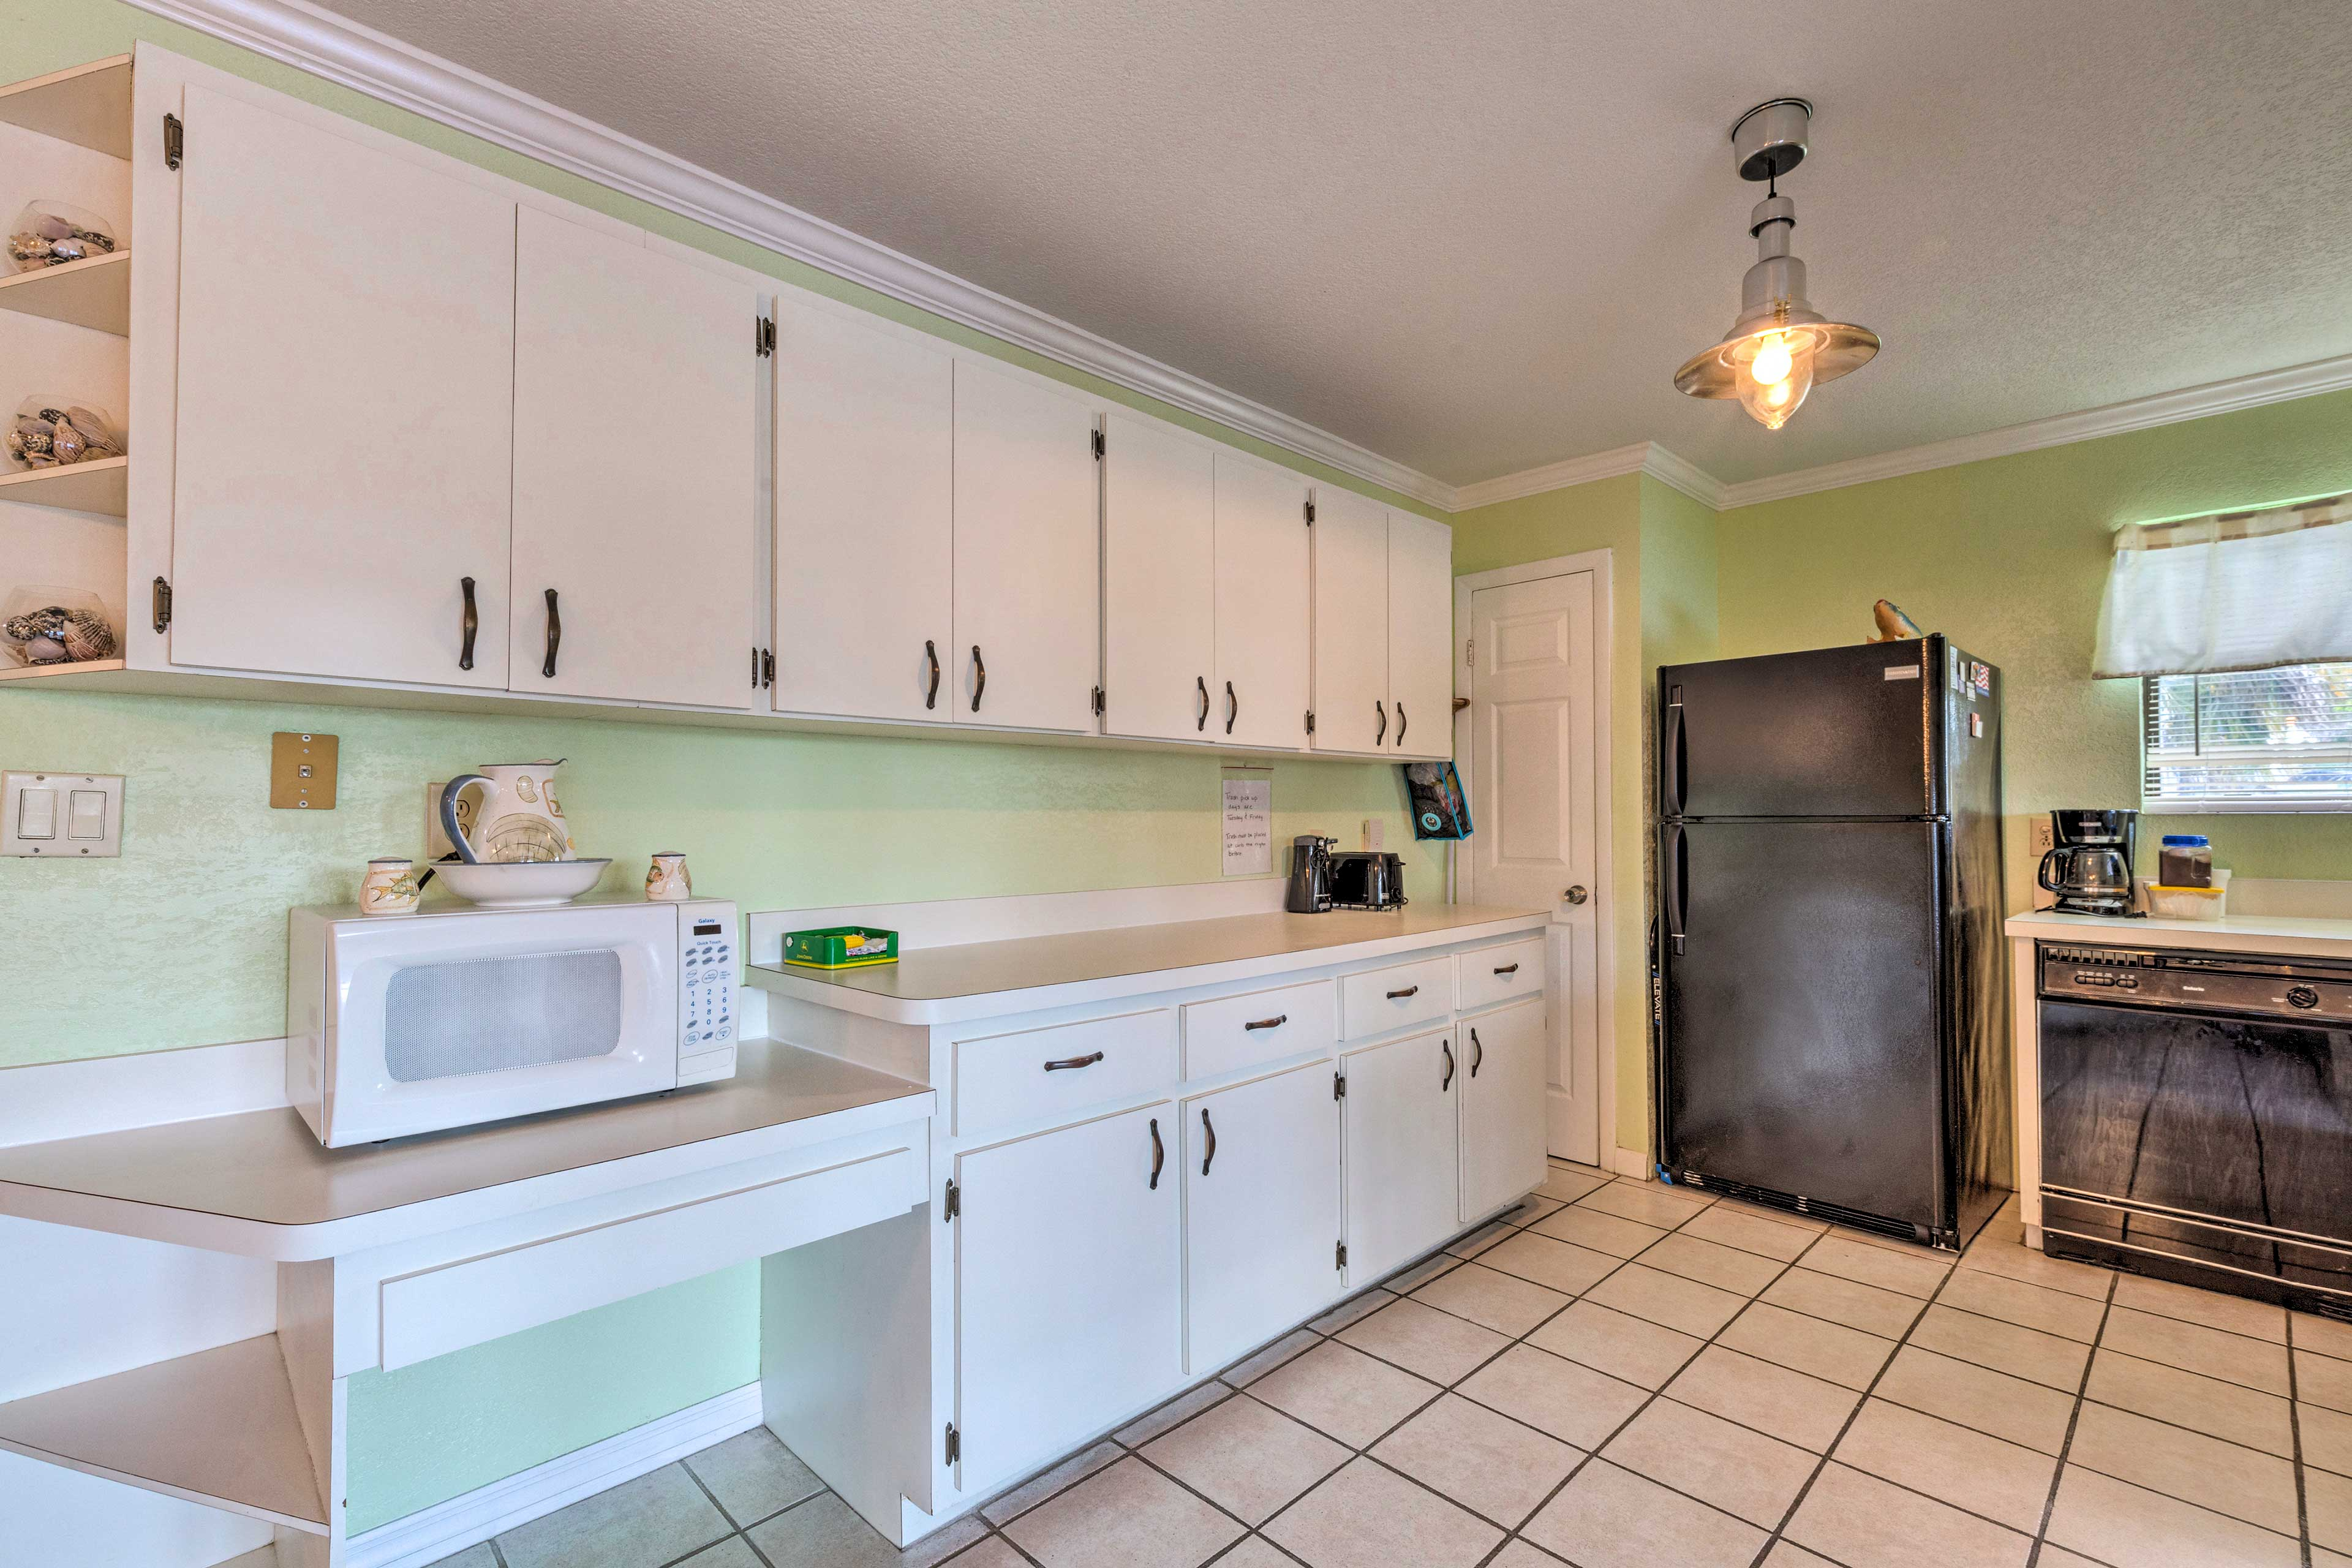 Prepare delicious feasts in the fully equipped kitchen.